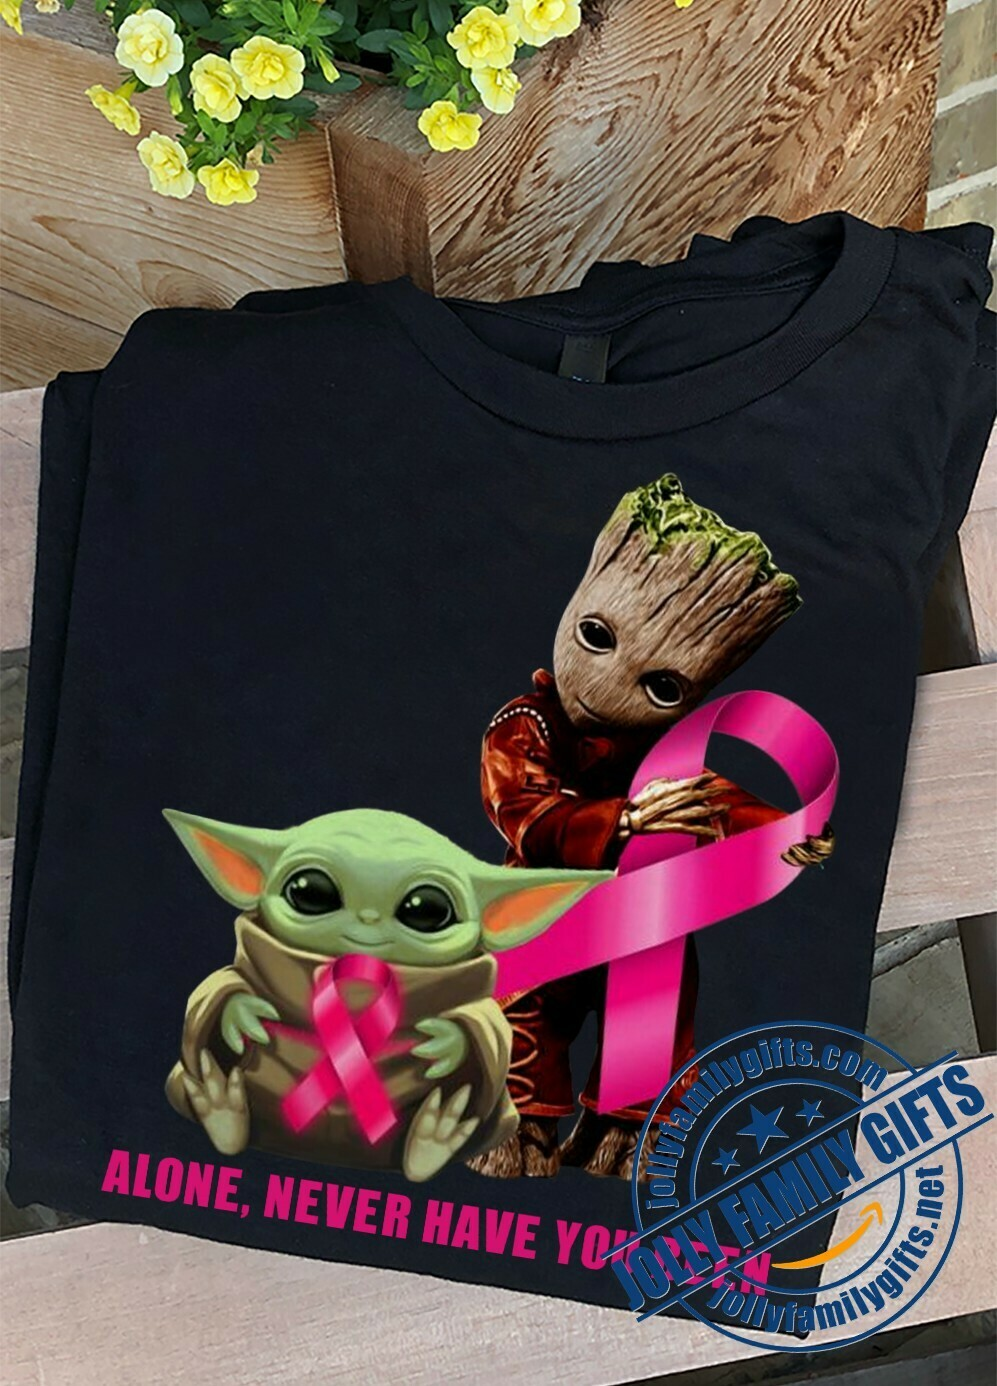 Baby Yoda and Groot Pocket hug pink ribbon never have you been alone The Mandalorian Star Wars Movie  Unisex T-Shirt Hoodie Sweatshirt Sweater Plus Size for Ladies Women Men Kids Youth Gifts Tee Jolly